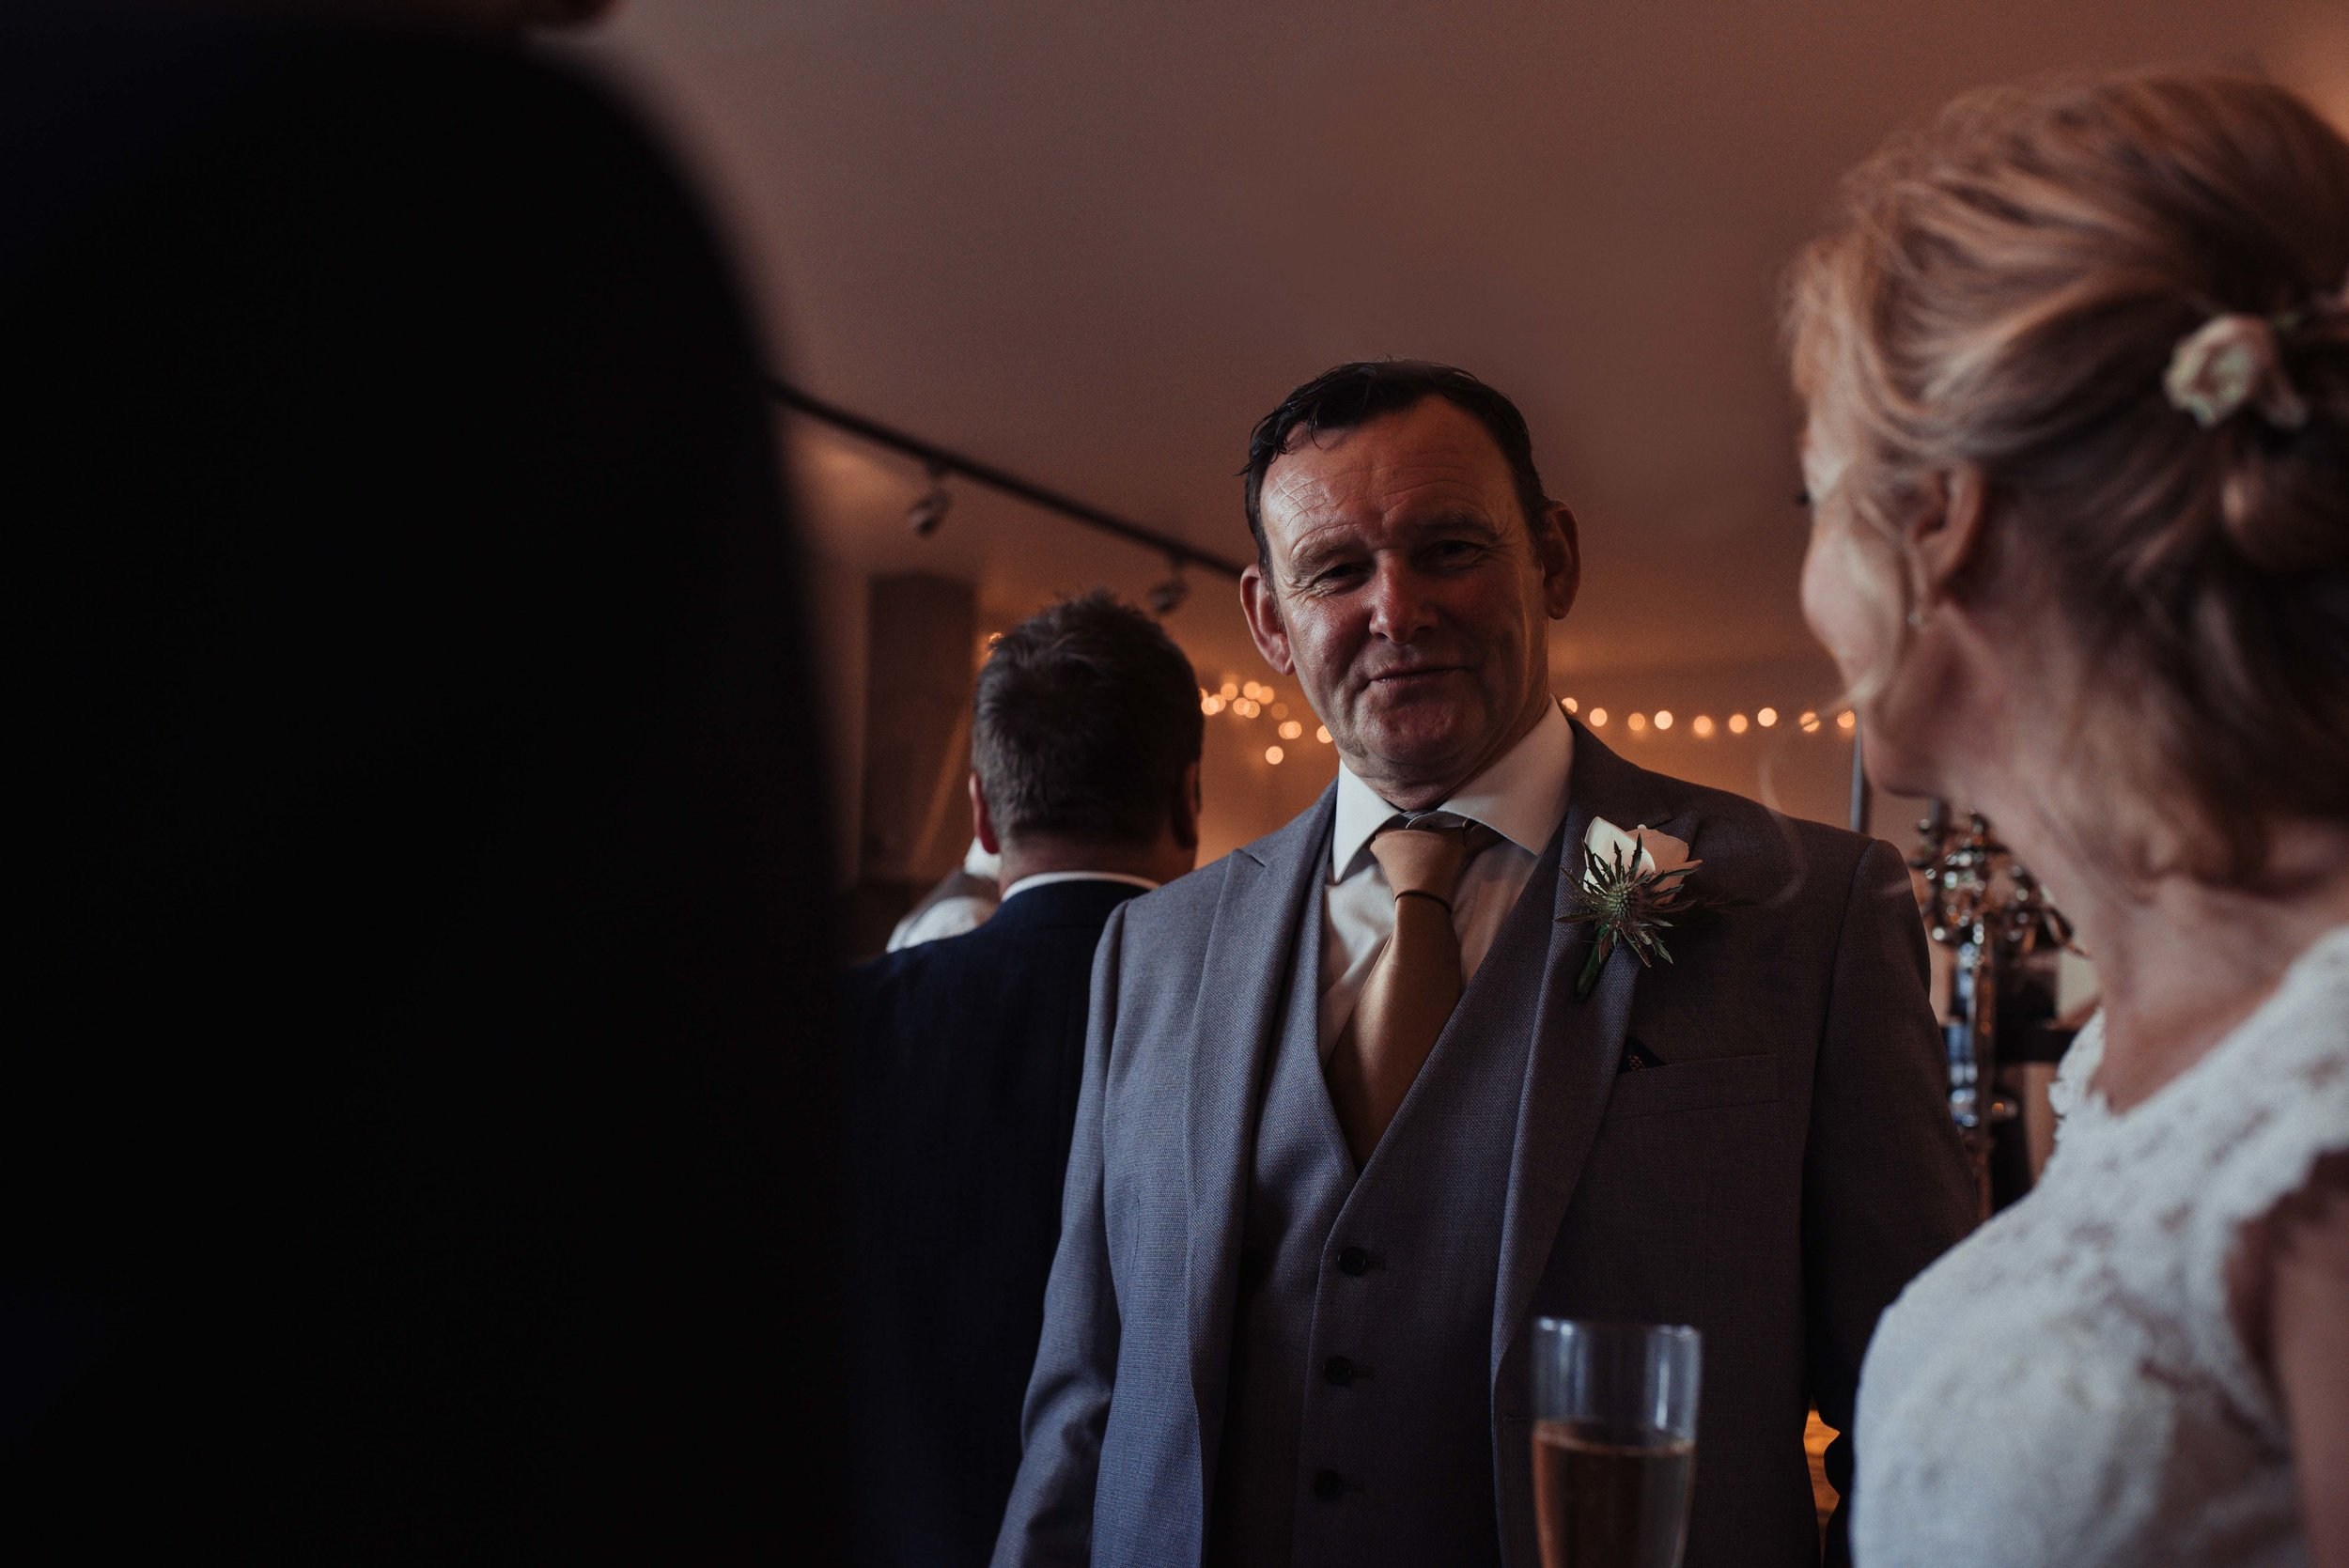 A male wedding guest standing talking to other guests inside the wedding venue